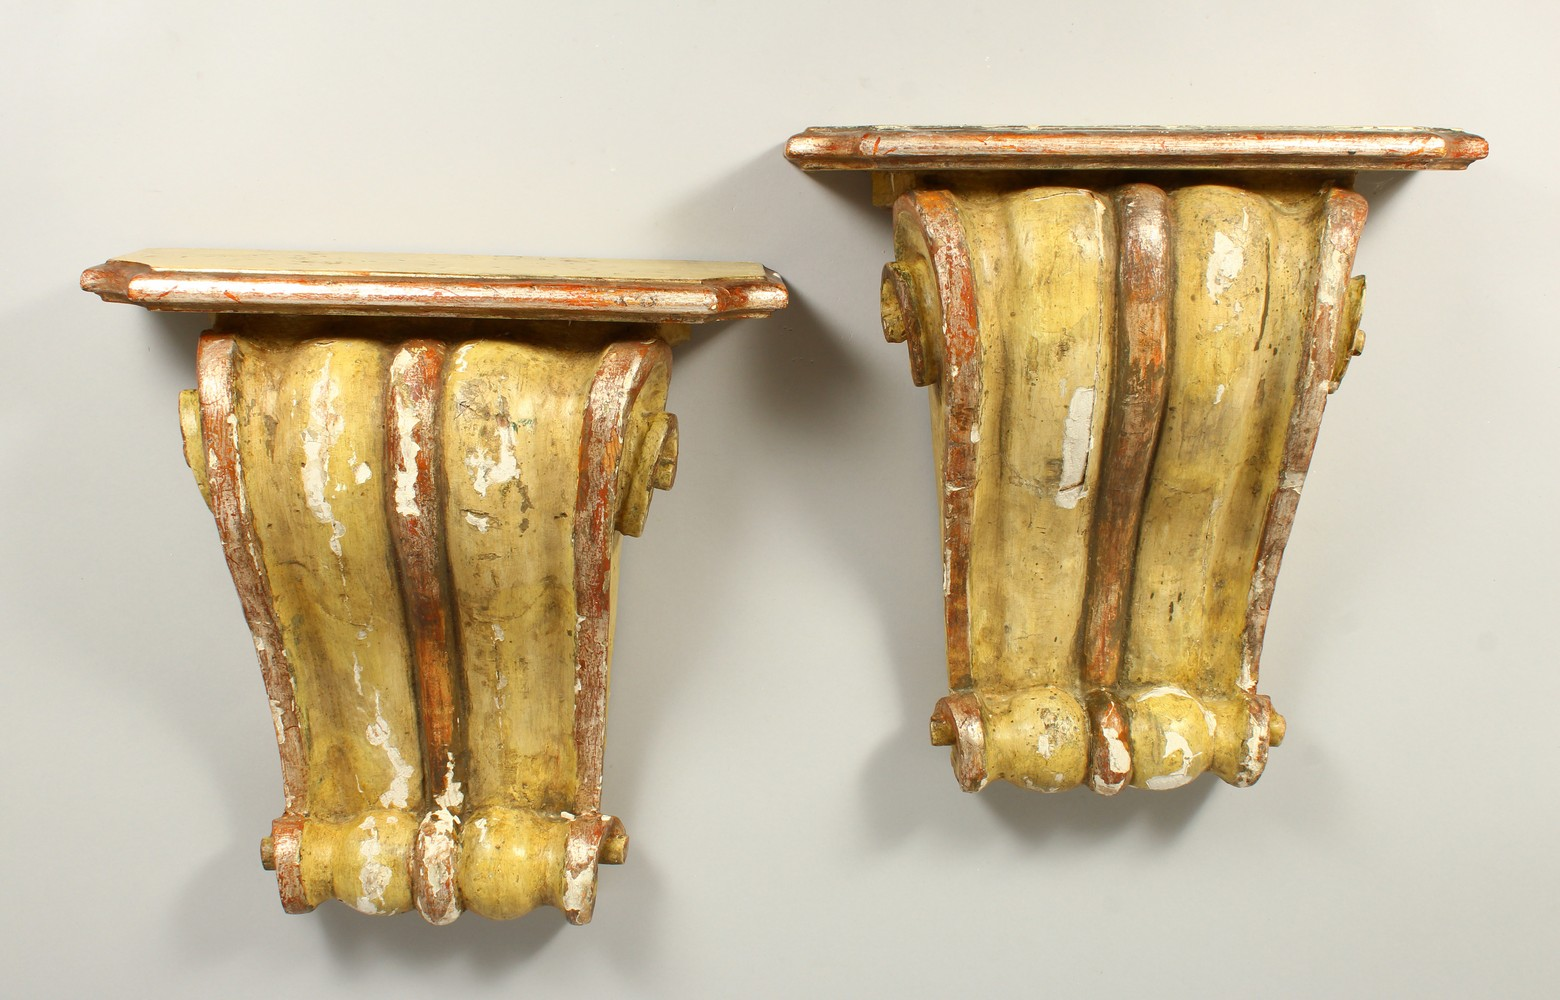 A PAIR OF 19TH/20TH CENTURY CARVED, GESSO AND PAINTED SCROLLING WALL BRACKETS. 41cms high x 40cms